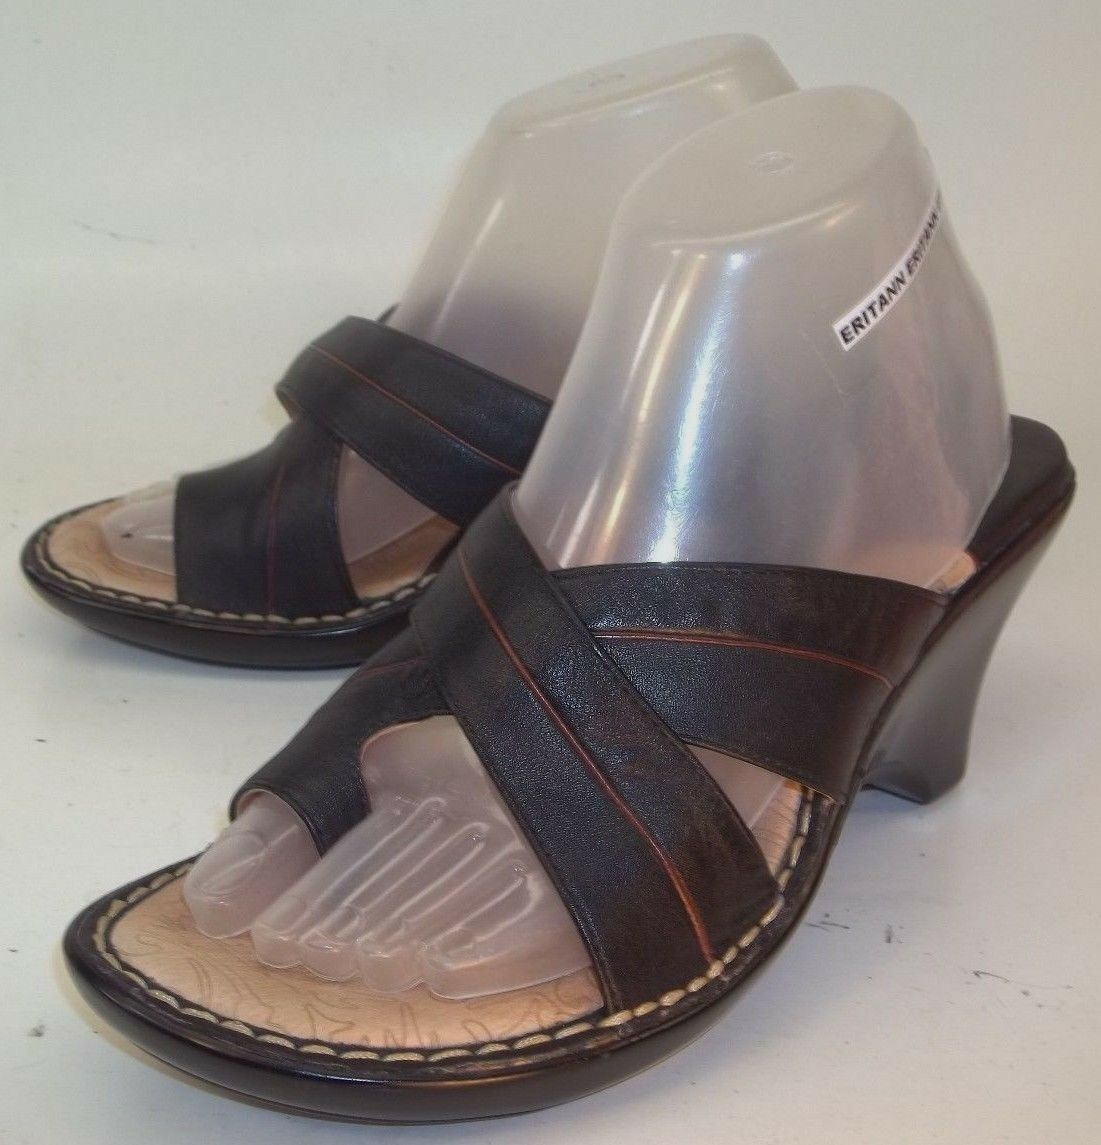 Sofft 1501601 Wos shoes Heels Sandals US 8.5 M Black Leather Comfort Wedge 1025